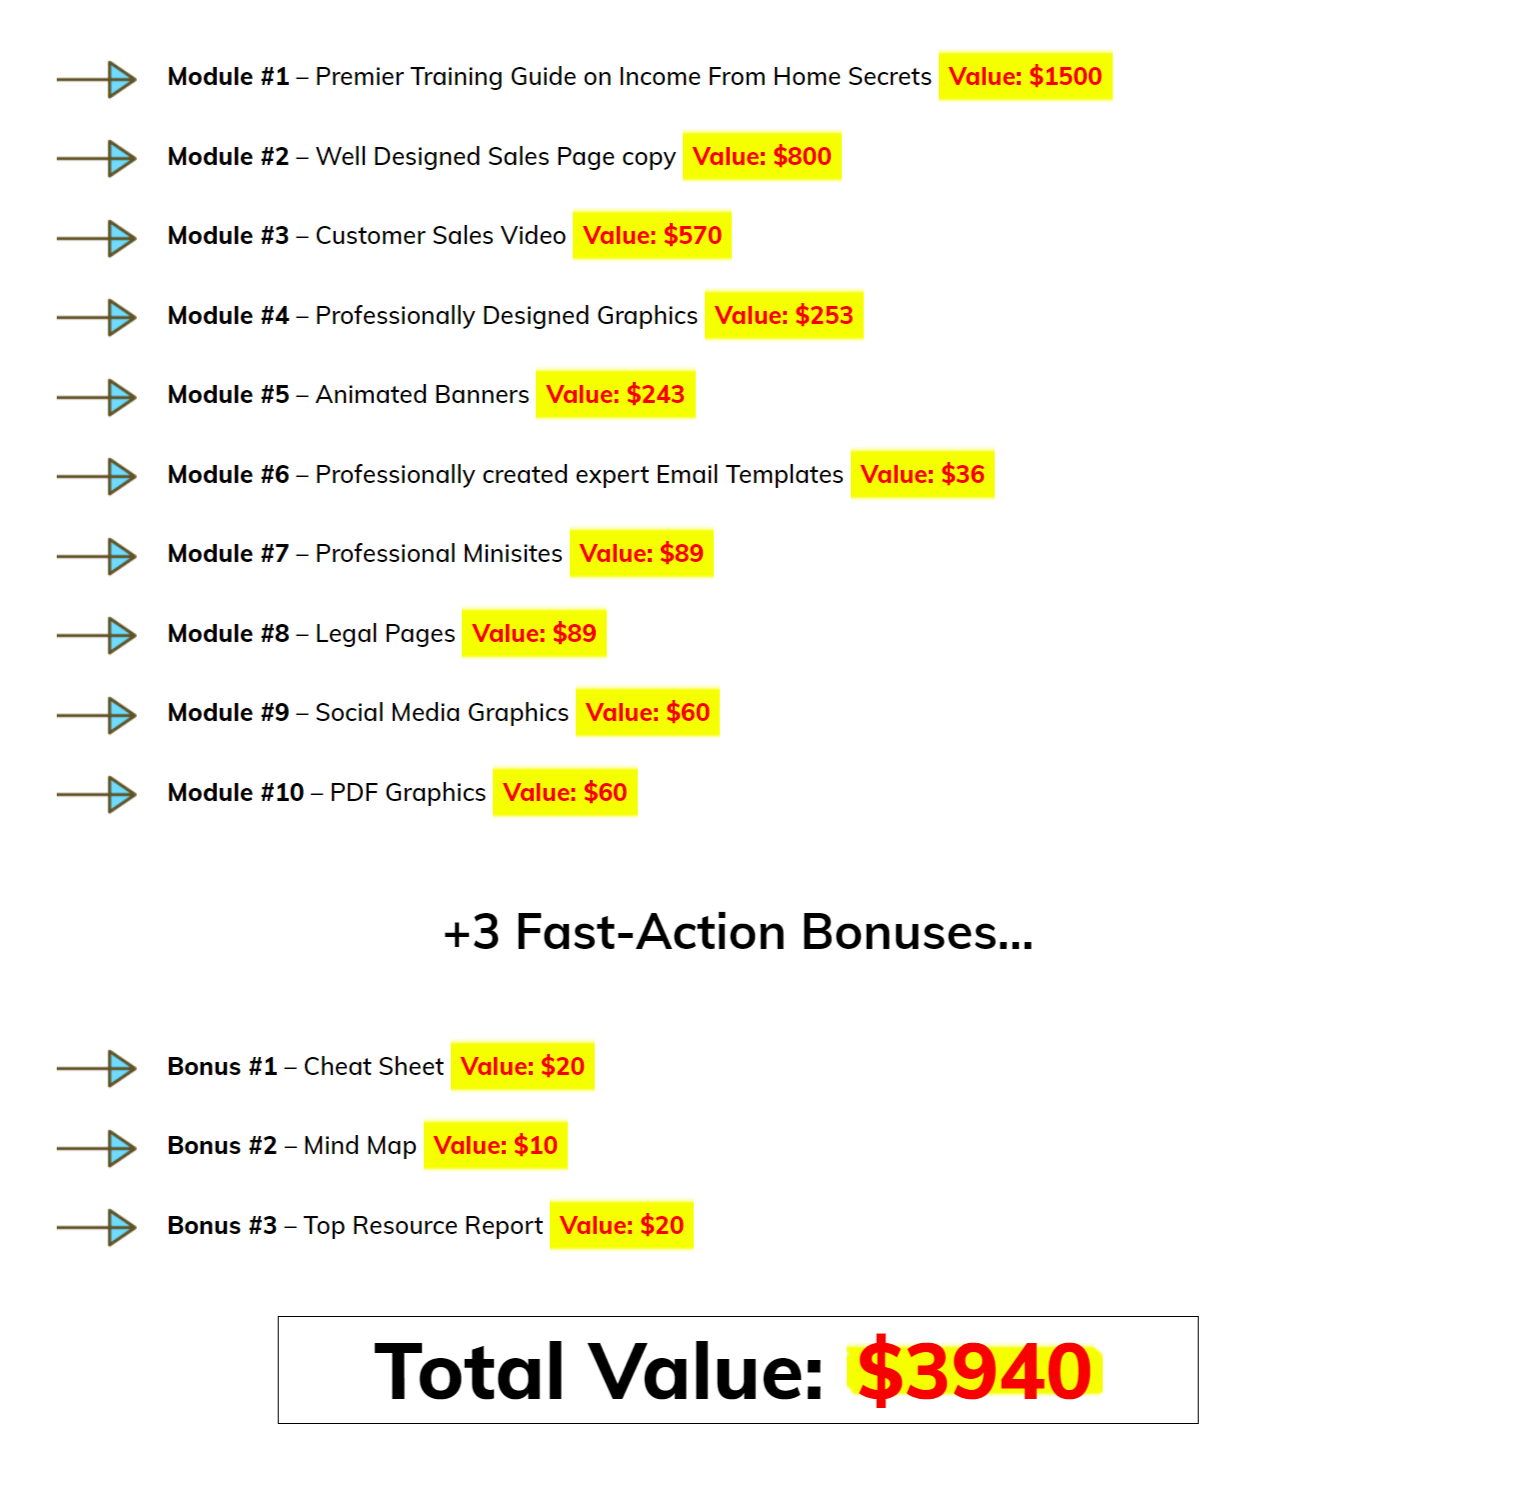 PLR-Income-from-Home-Secrets-Price